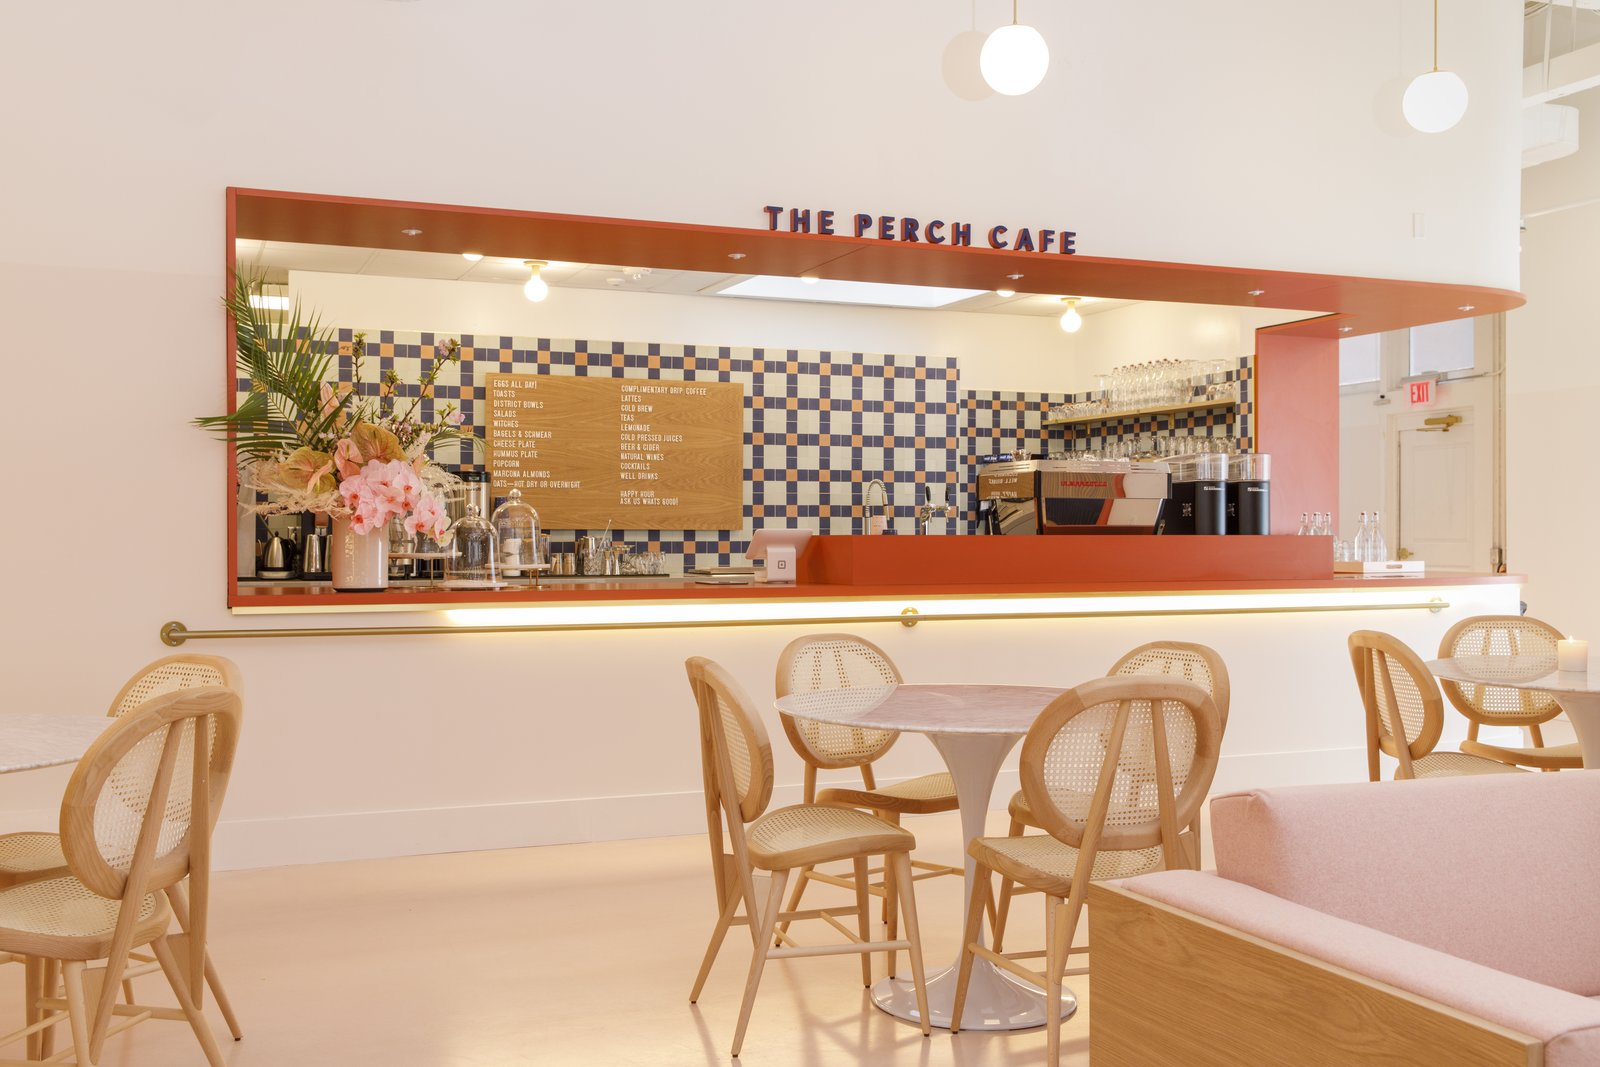 At the Perch Cafe, the Clé Tile backsplash is a striking focal point behind the tulip tables and chairs from Cru. The cafe menu incorporates offerings from local women-owned companies.